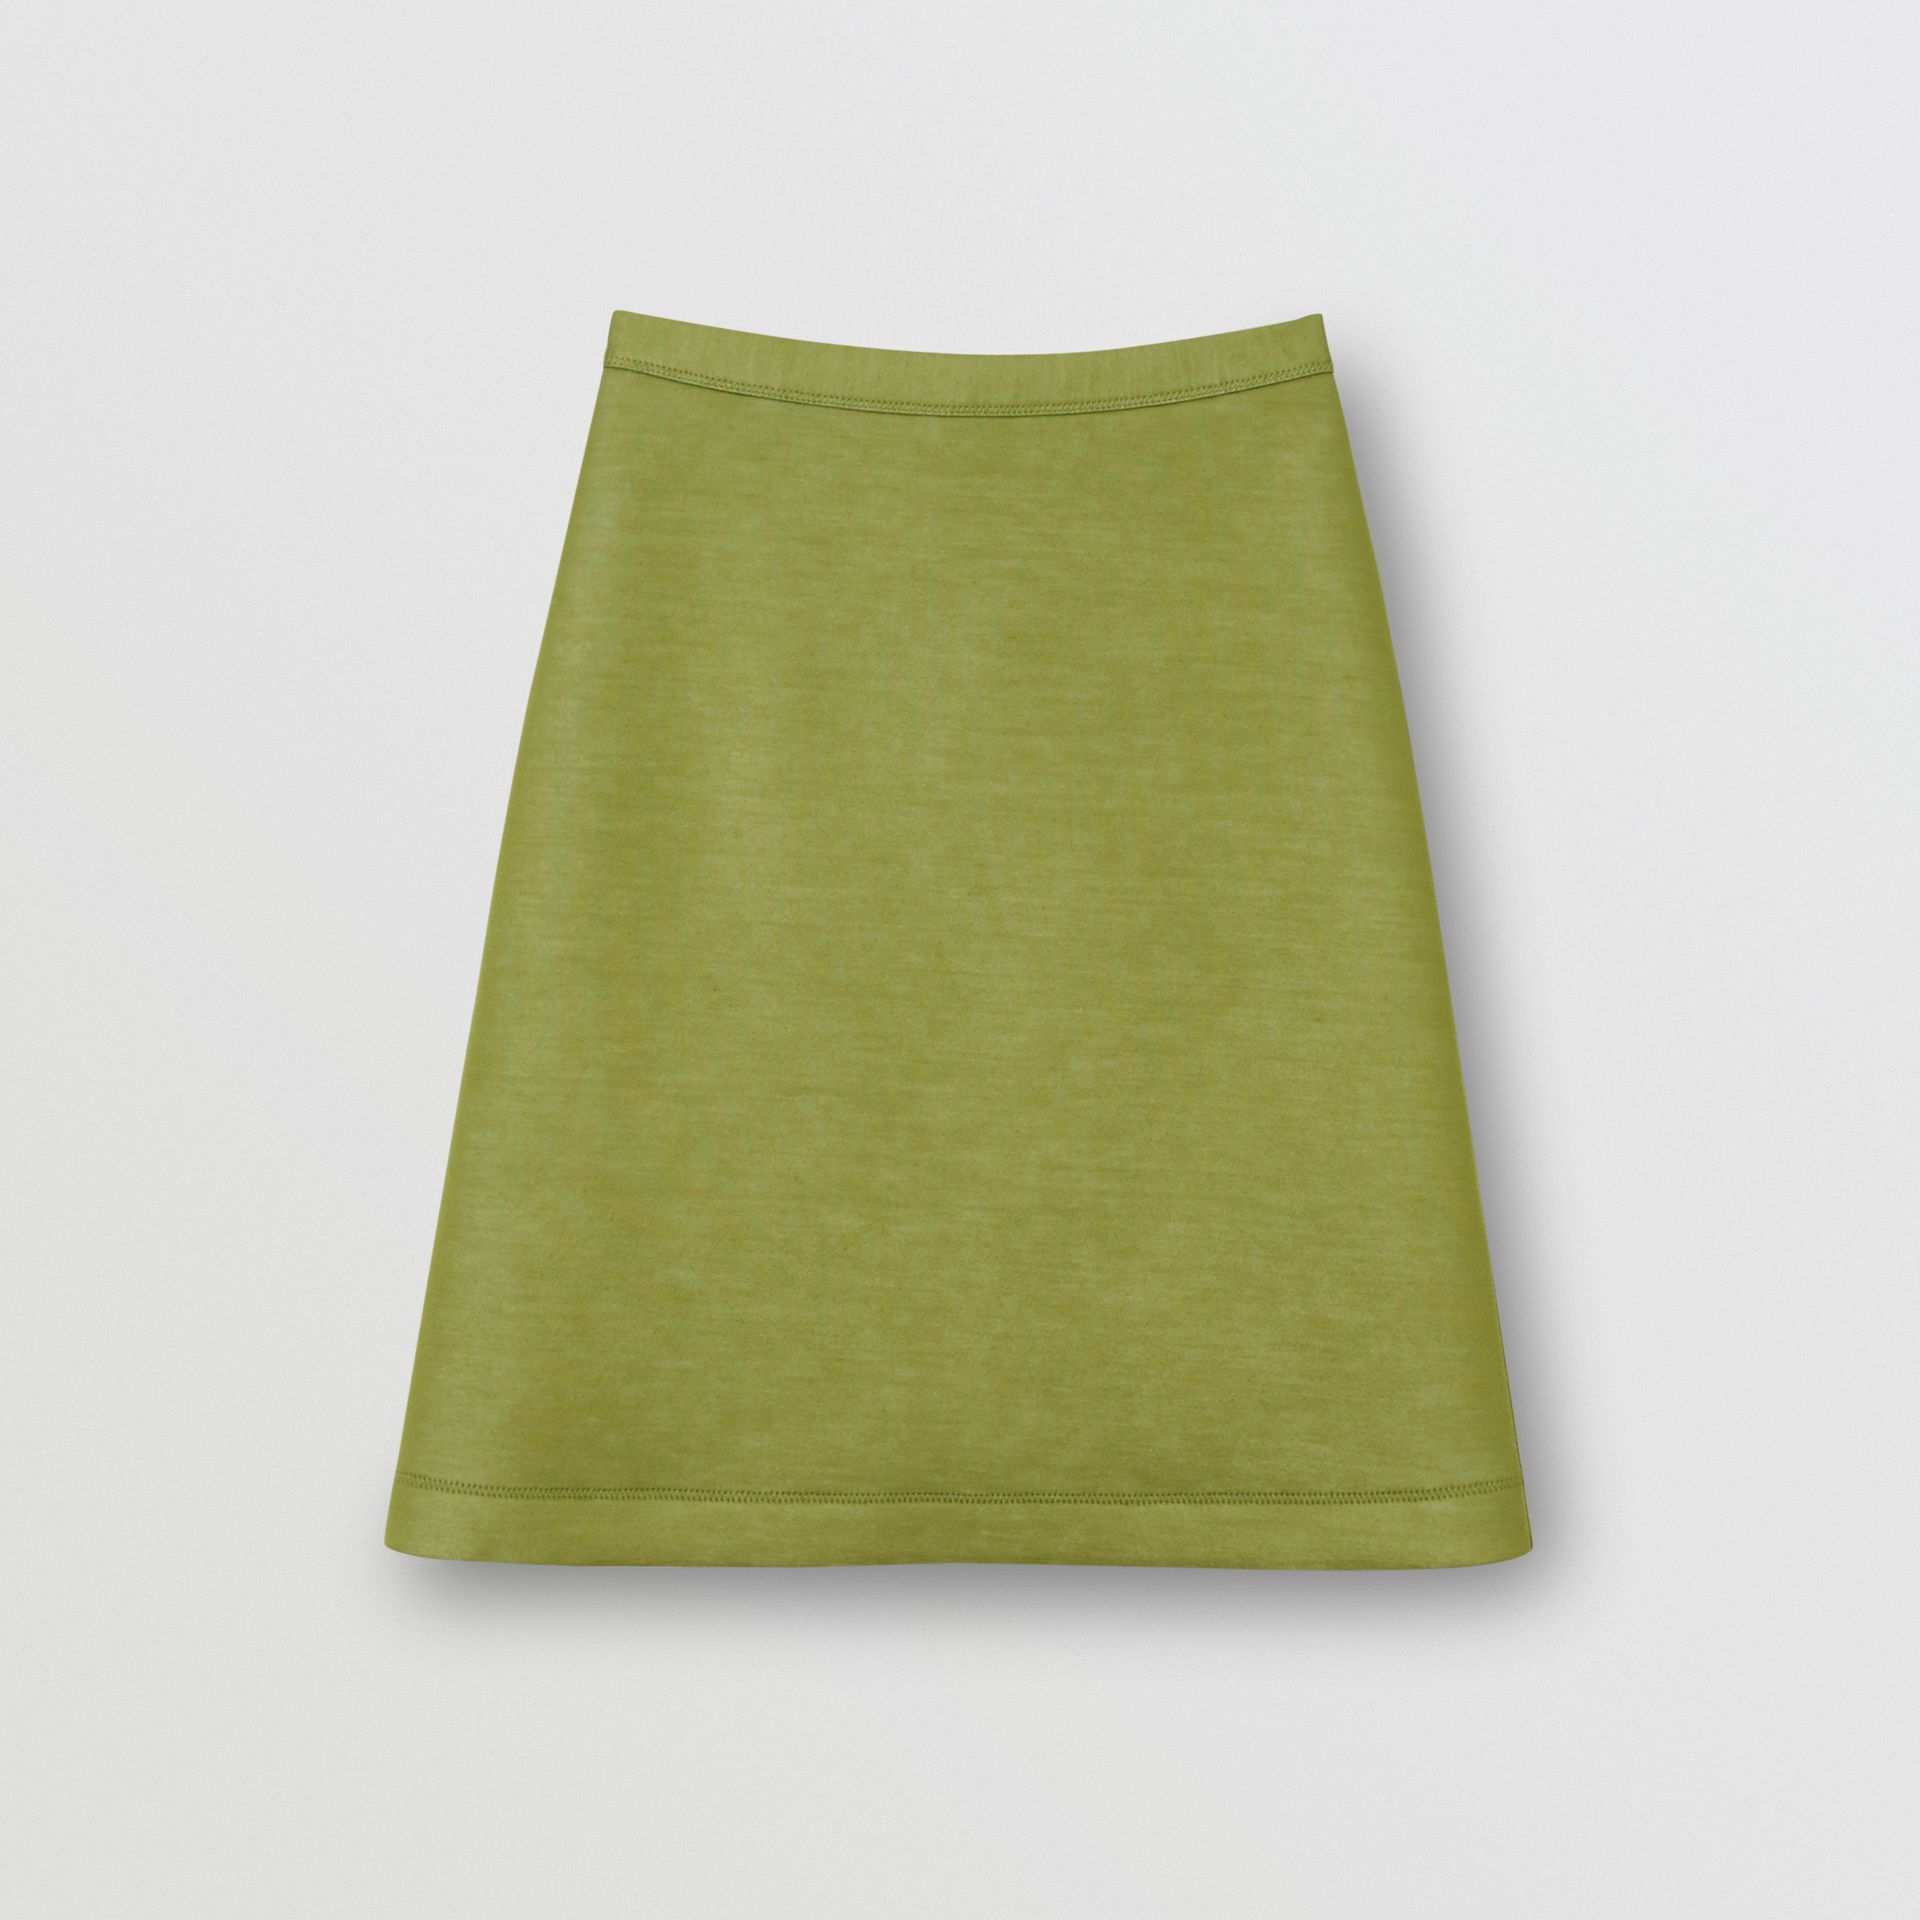 Double-faced Neoprene Skirt in Cedar Green - Women | Burberry - gallery image 3